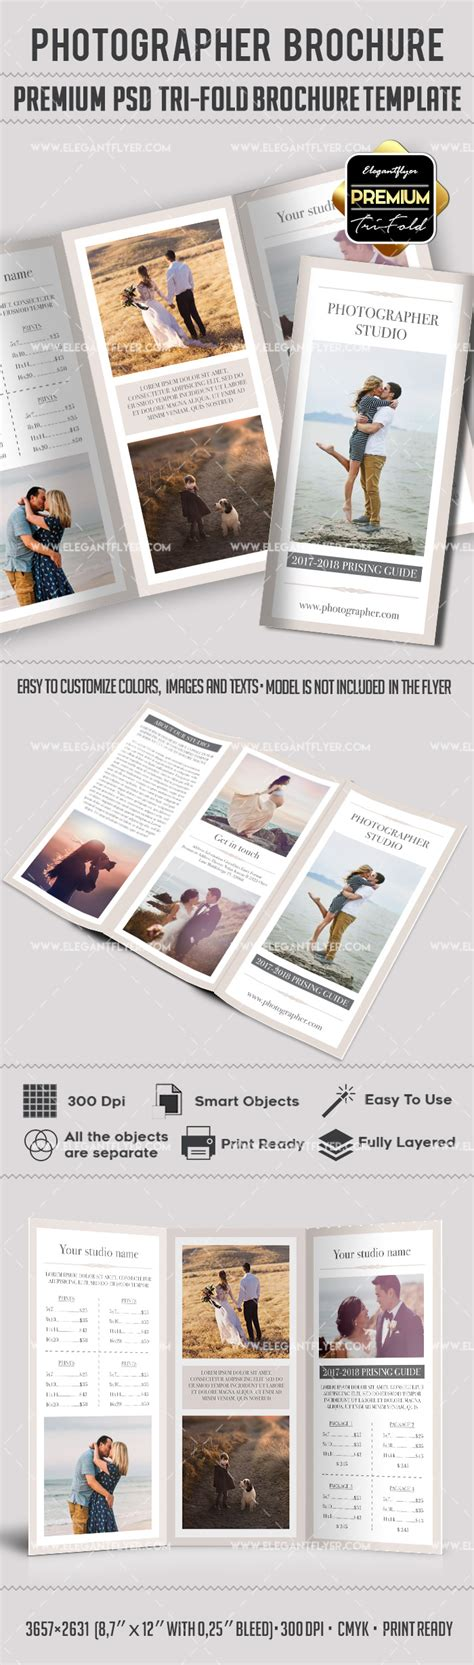 Tri Fold Brochure Templates Free By Elegantflyer Tri Fold Brochure Photography Template Free By Elegantflyer